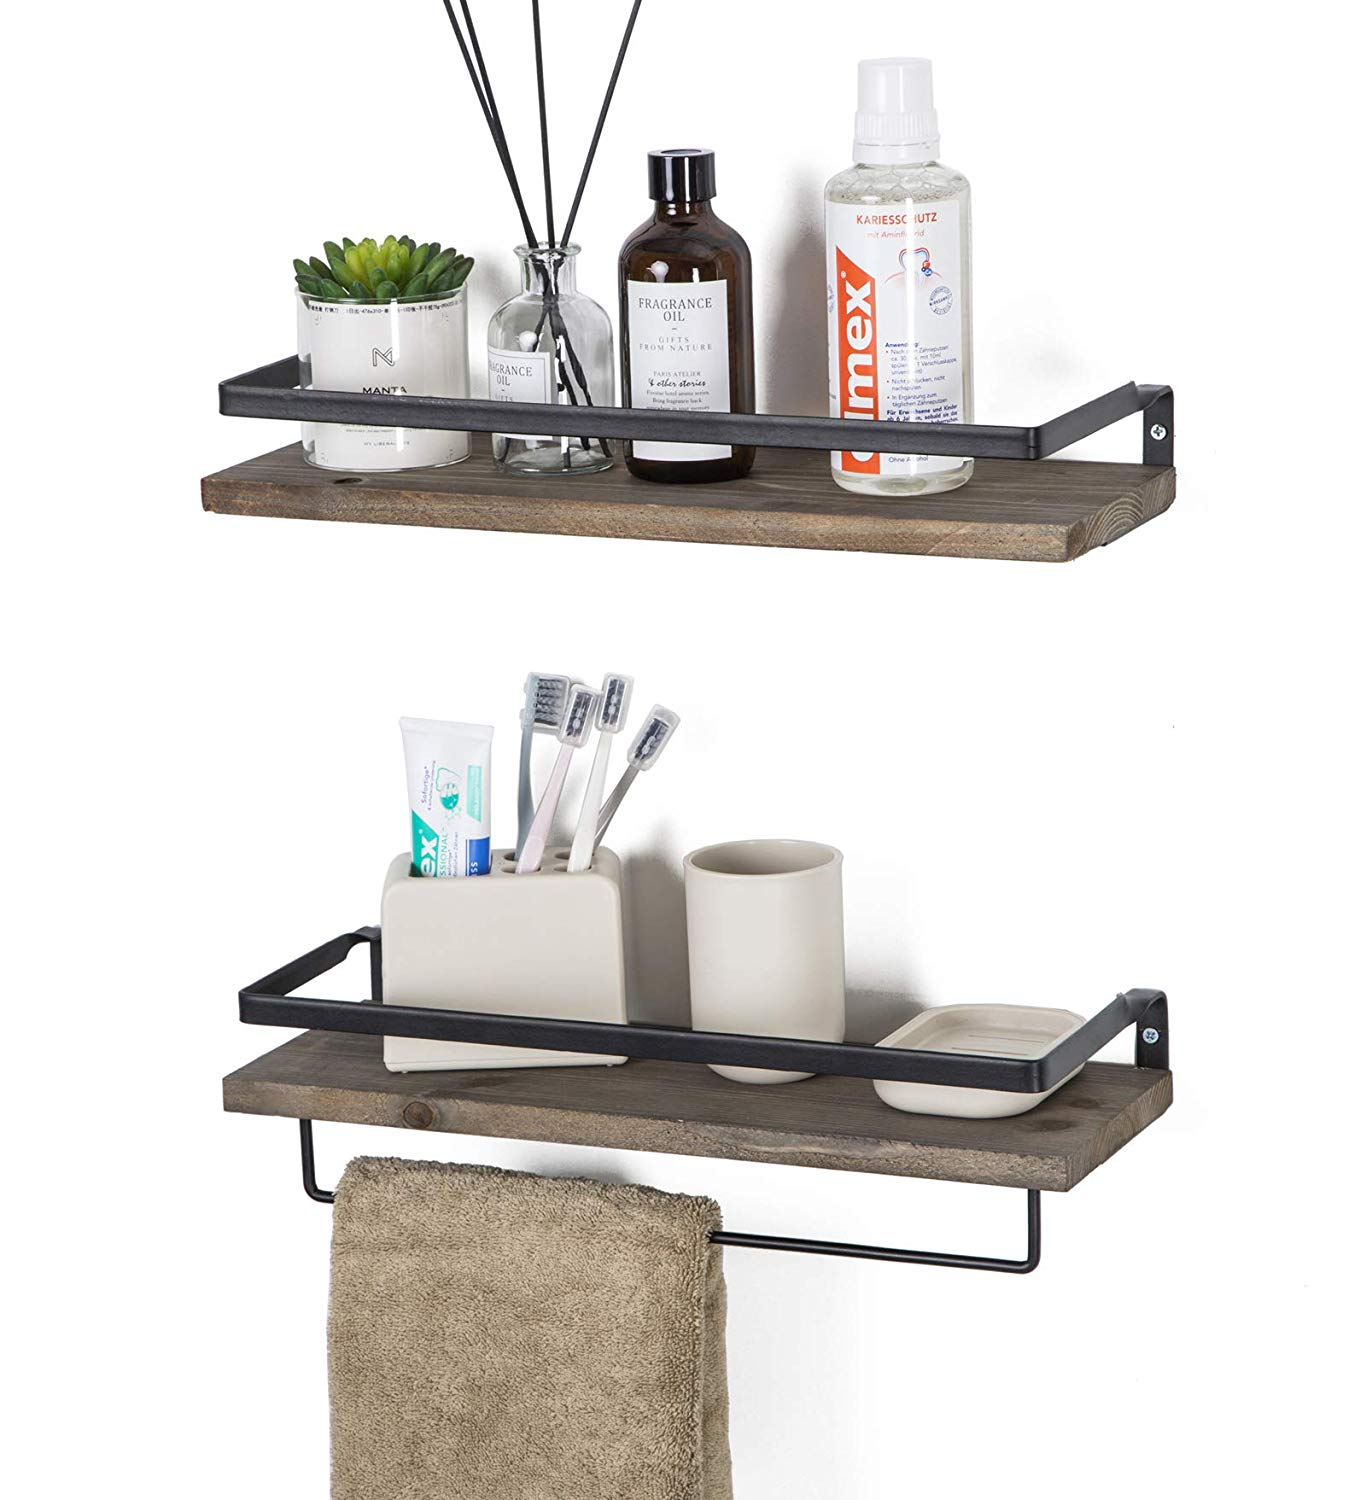 soduku floating shelves wall mounted storage for bathroom decor kitchen set brown home pottery barn simple mount system white metal shelf ikea shoe bench bedroom vinyl tile glue